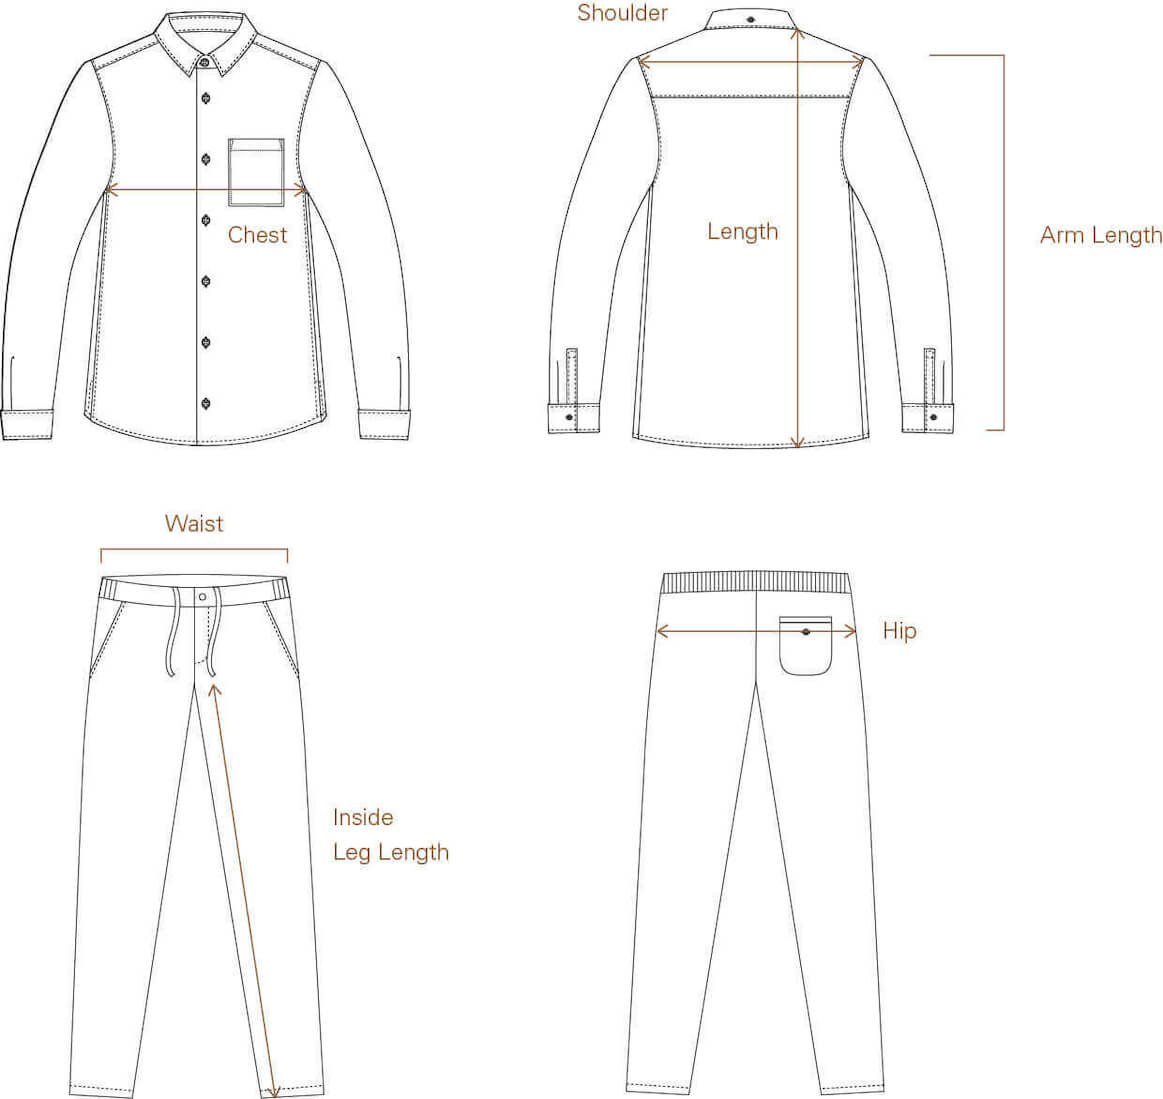 Size Guide for Men's Shirts, T-Shirts, and Relaxed Pants